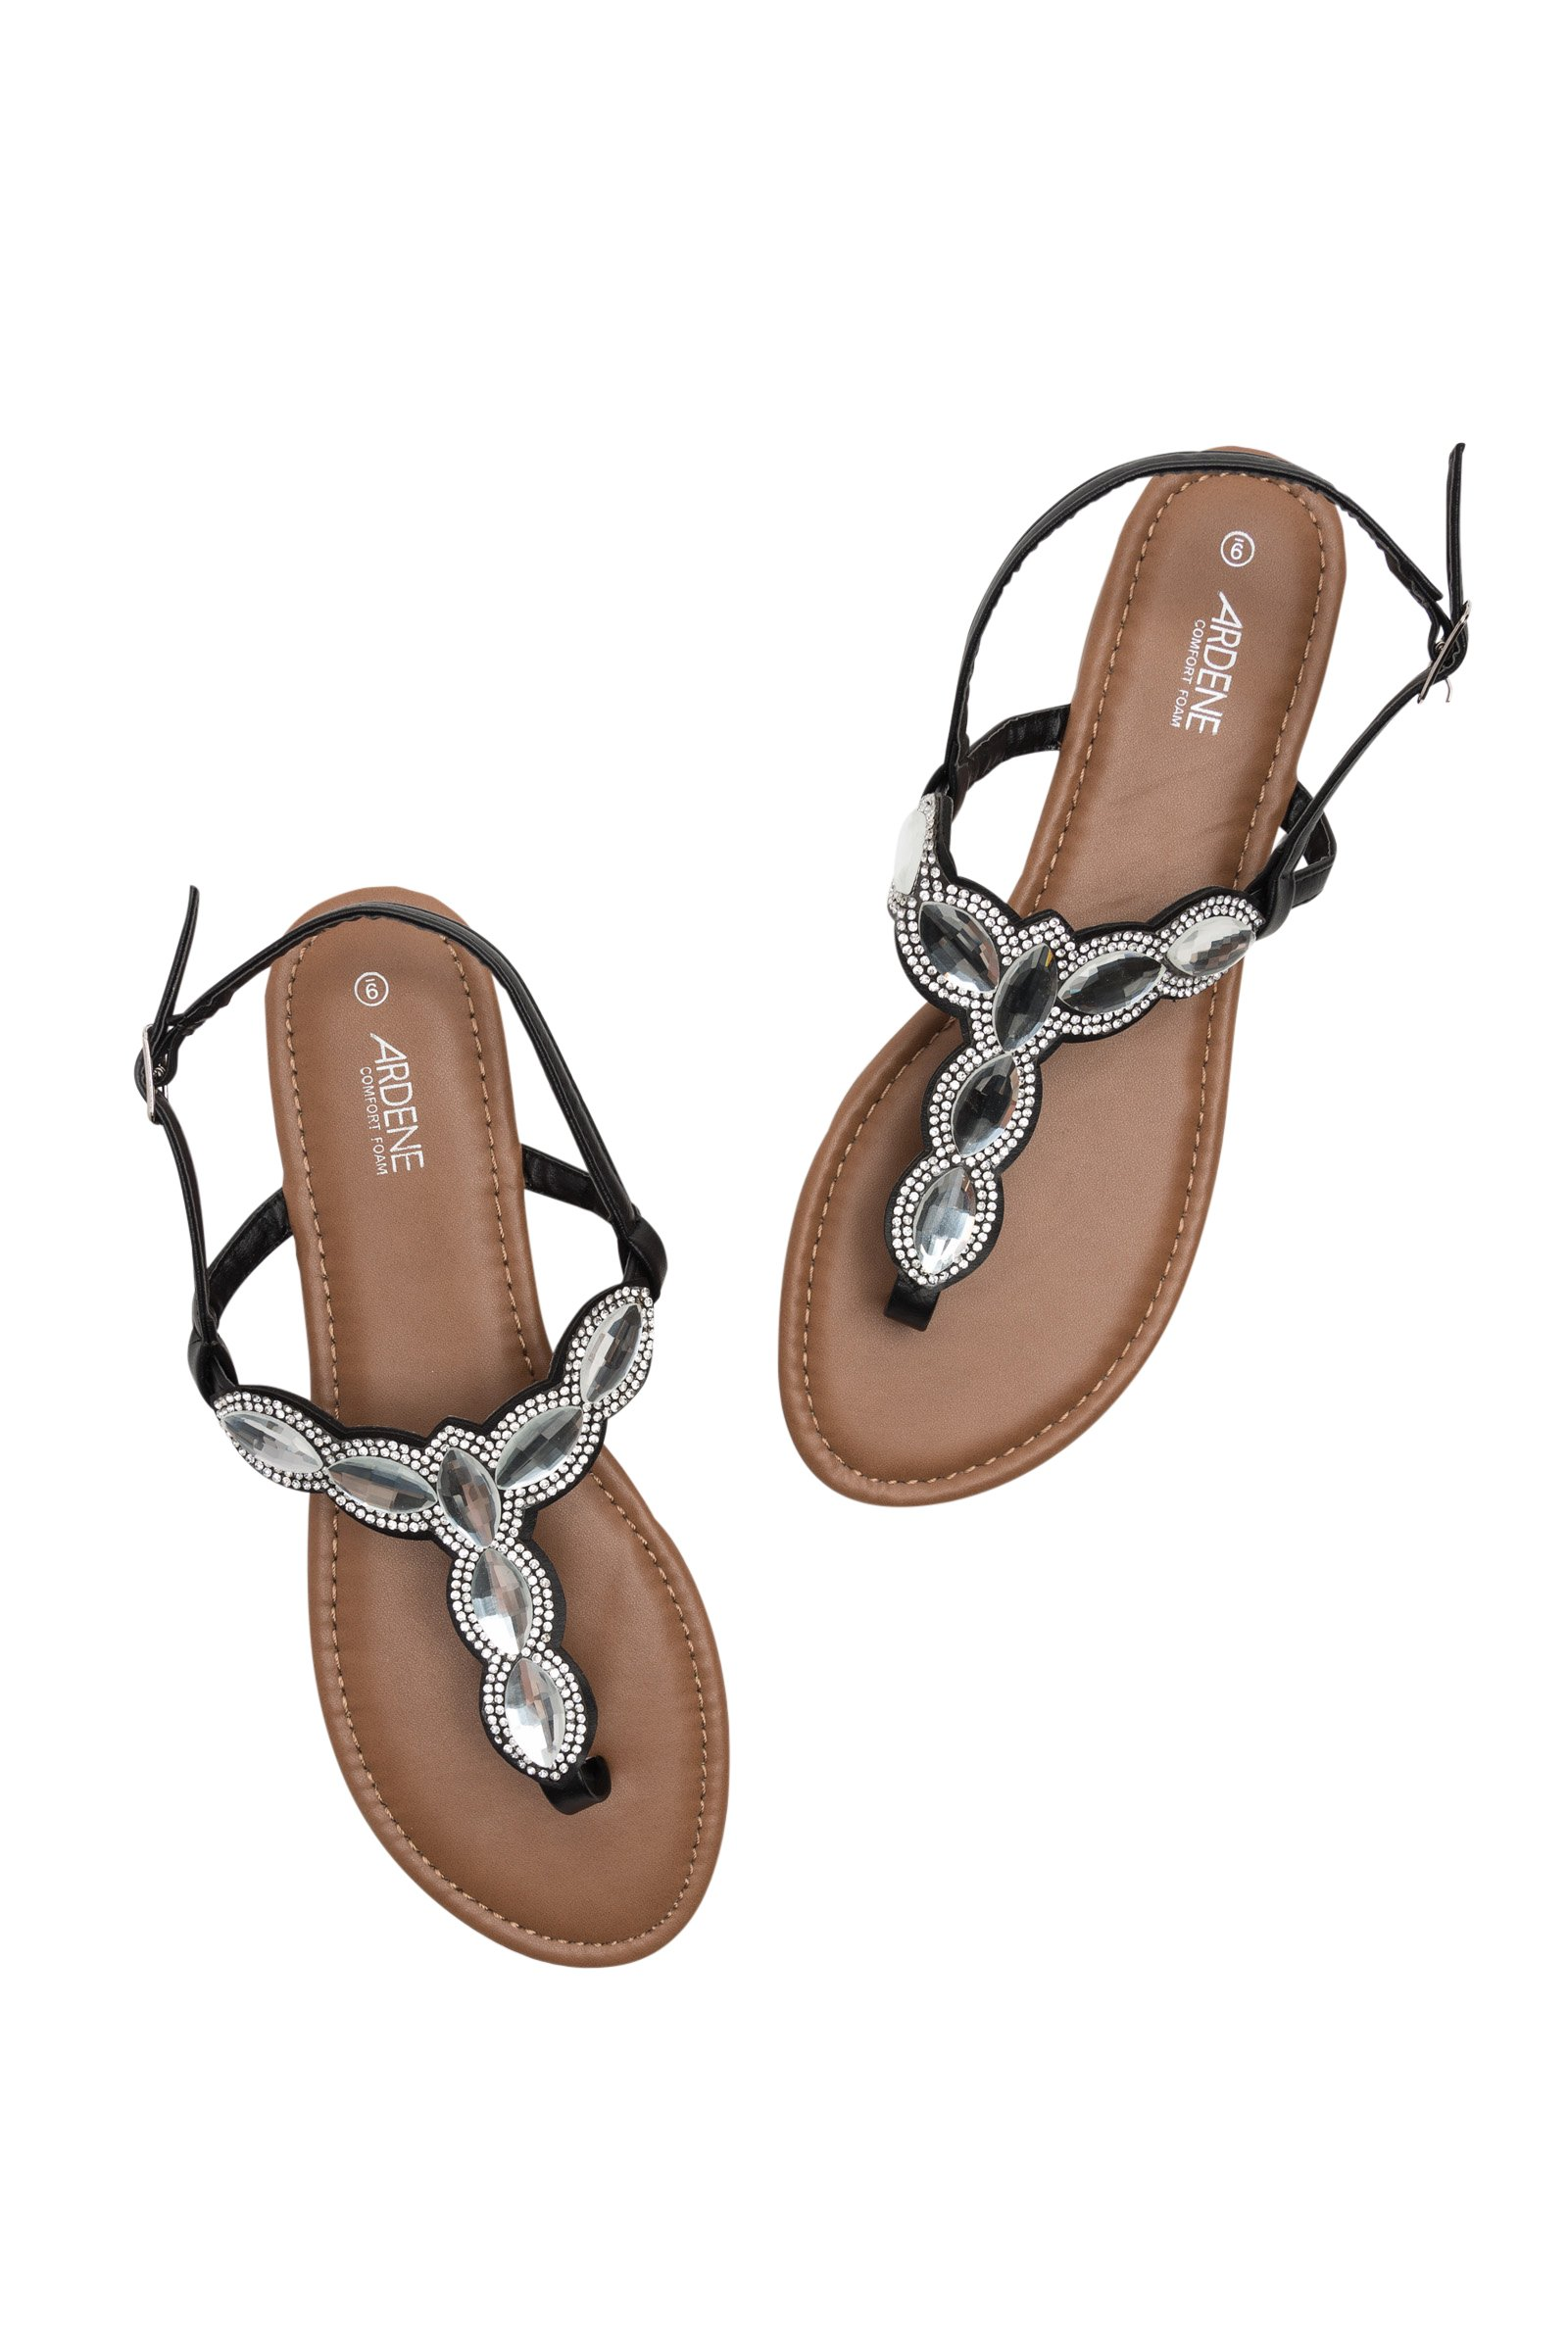 Ardene - Women's - T-Strap Sandals - Glass Jewel T-Strap Sandals 8 -(8A-FW01411)